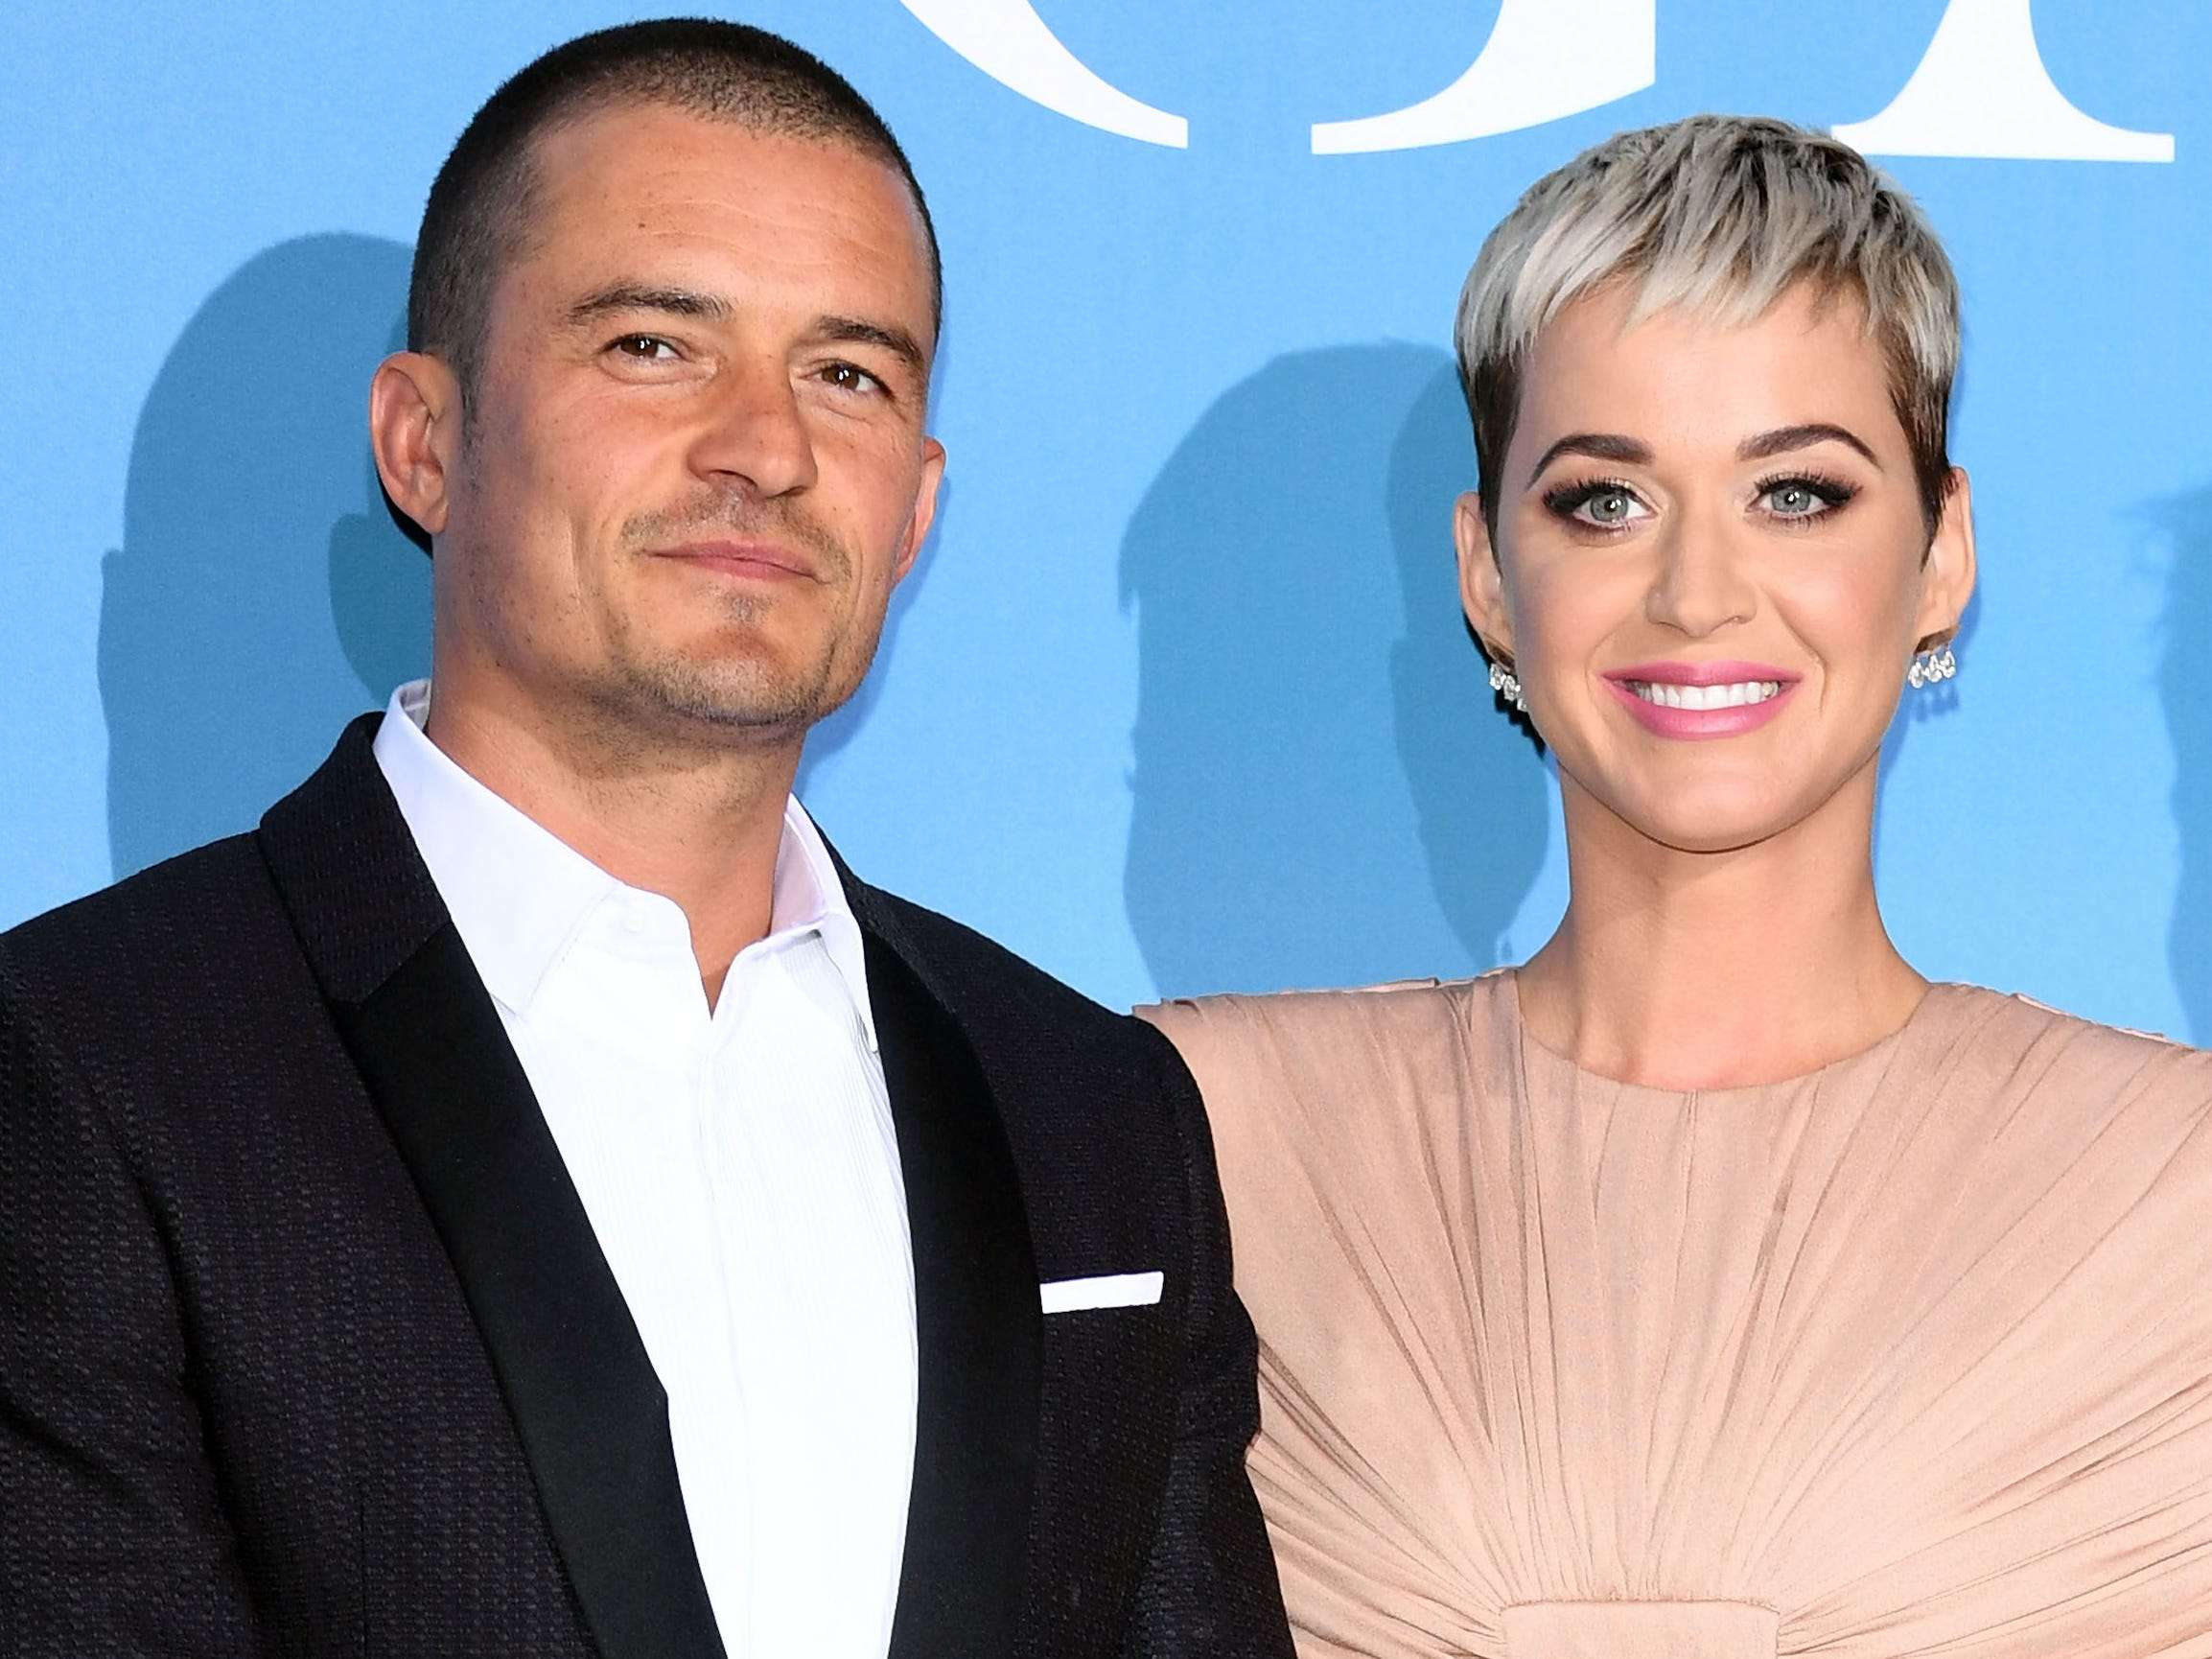 Orlando Bloom jokes that he and Katy Perry don't have 'enough' sex now that they're parents